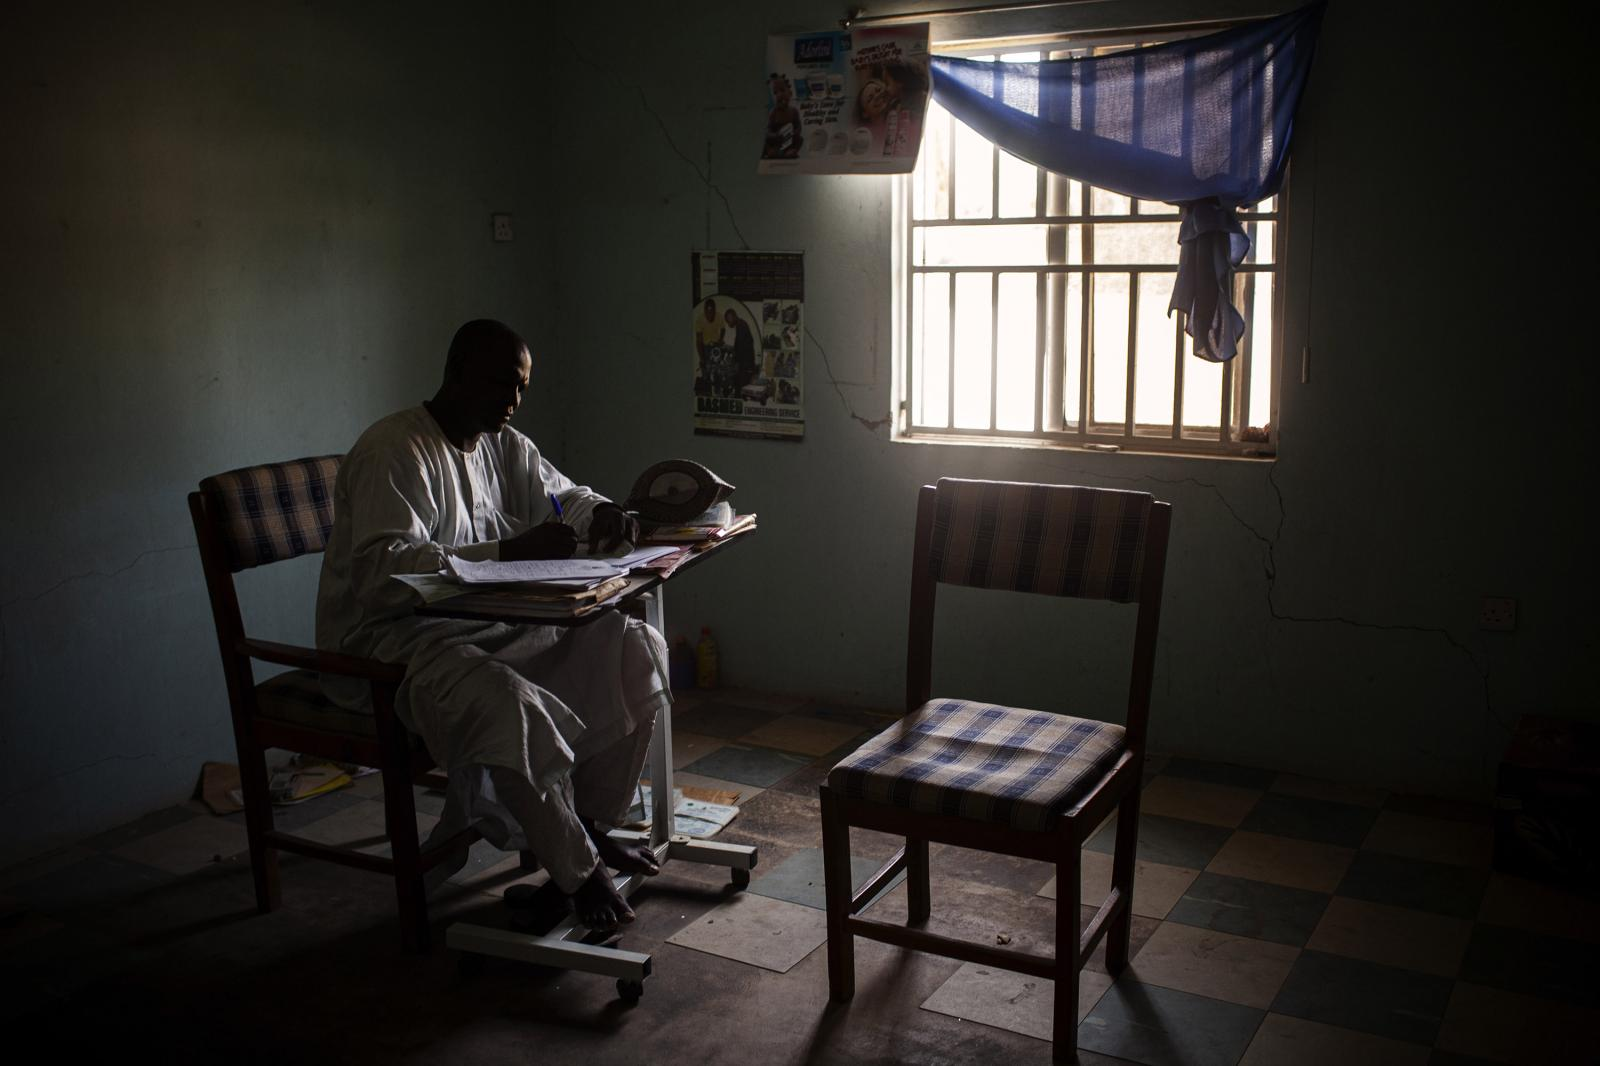 A health worker is seen inside a hospital in Maiduguri. Nigeria 2014. After ten years of conflict with Boko Haram in the northeast, Nigeria continues to contend with violence from the insurgency group and its breakout factions, as well as violent banditry, kidnappings, and killings by armed groups in other parts of the country. Diego Ibarra Sánchez